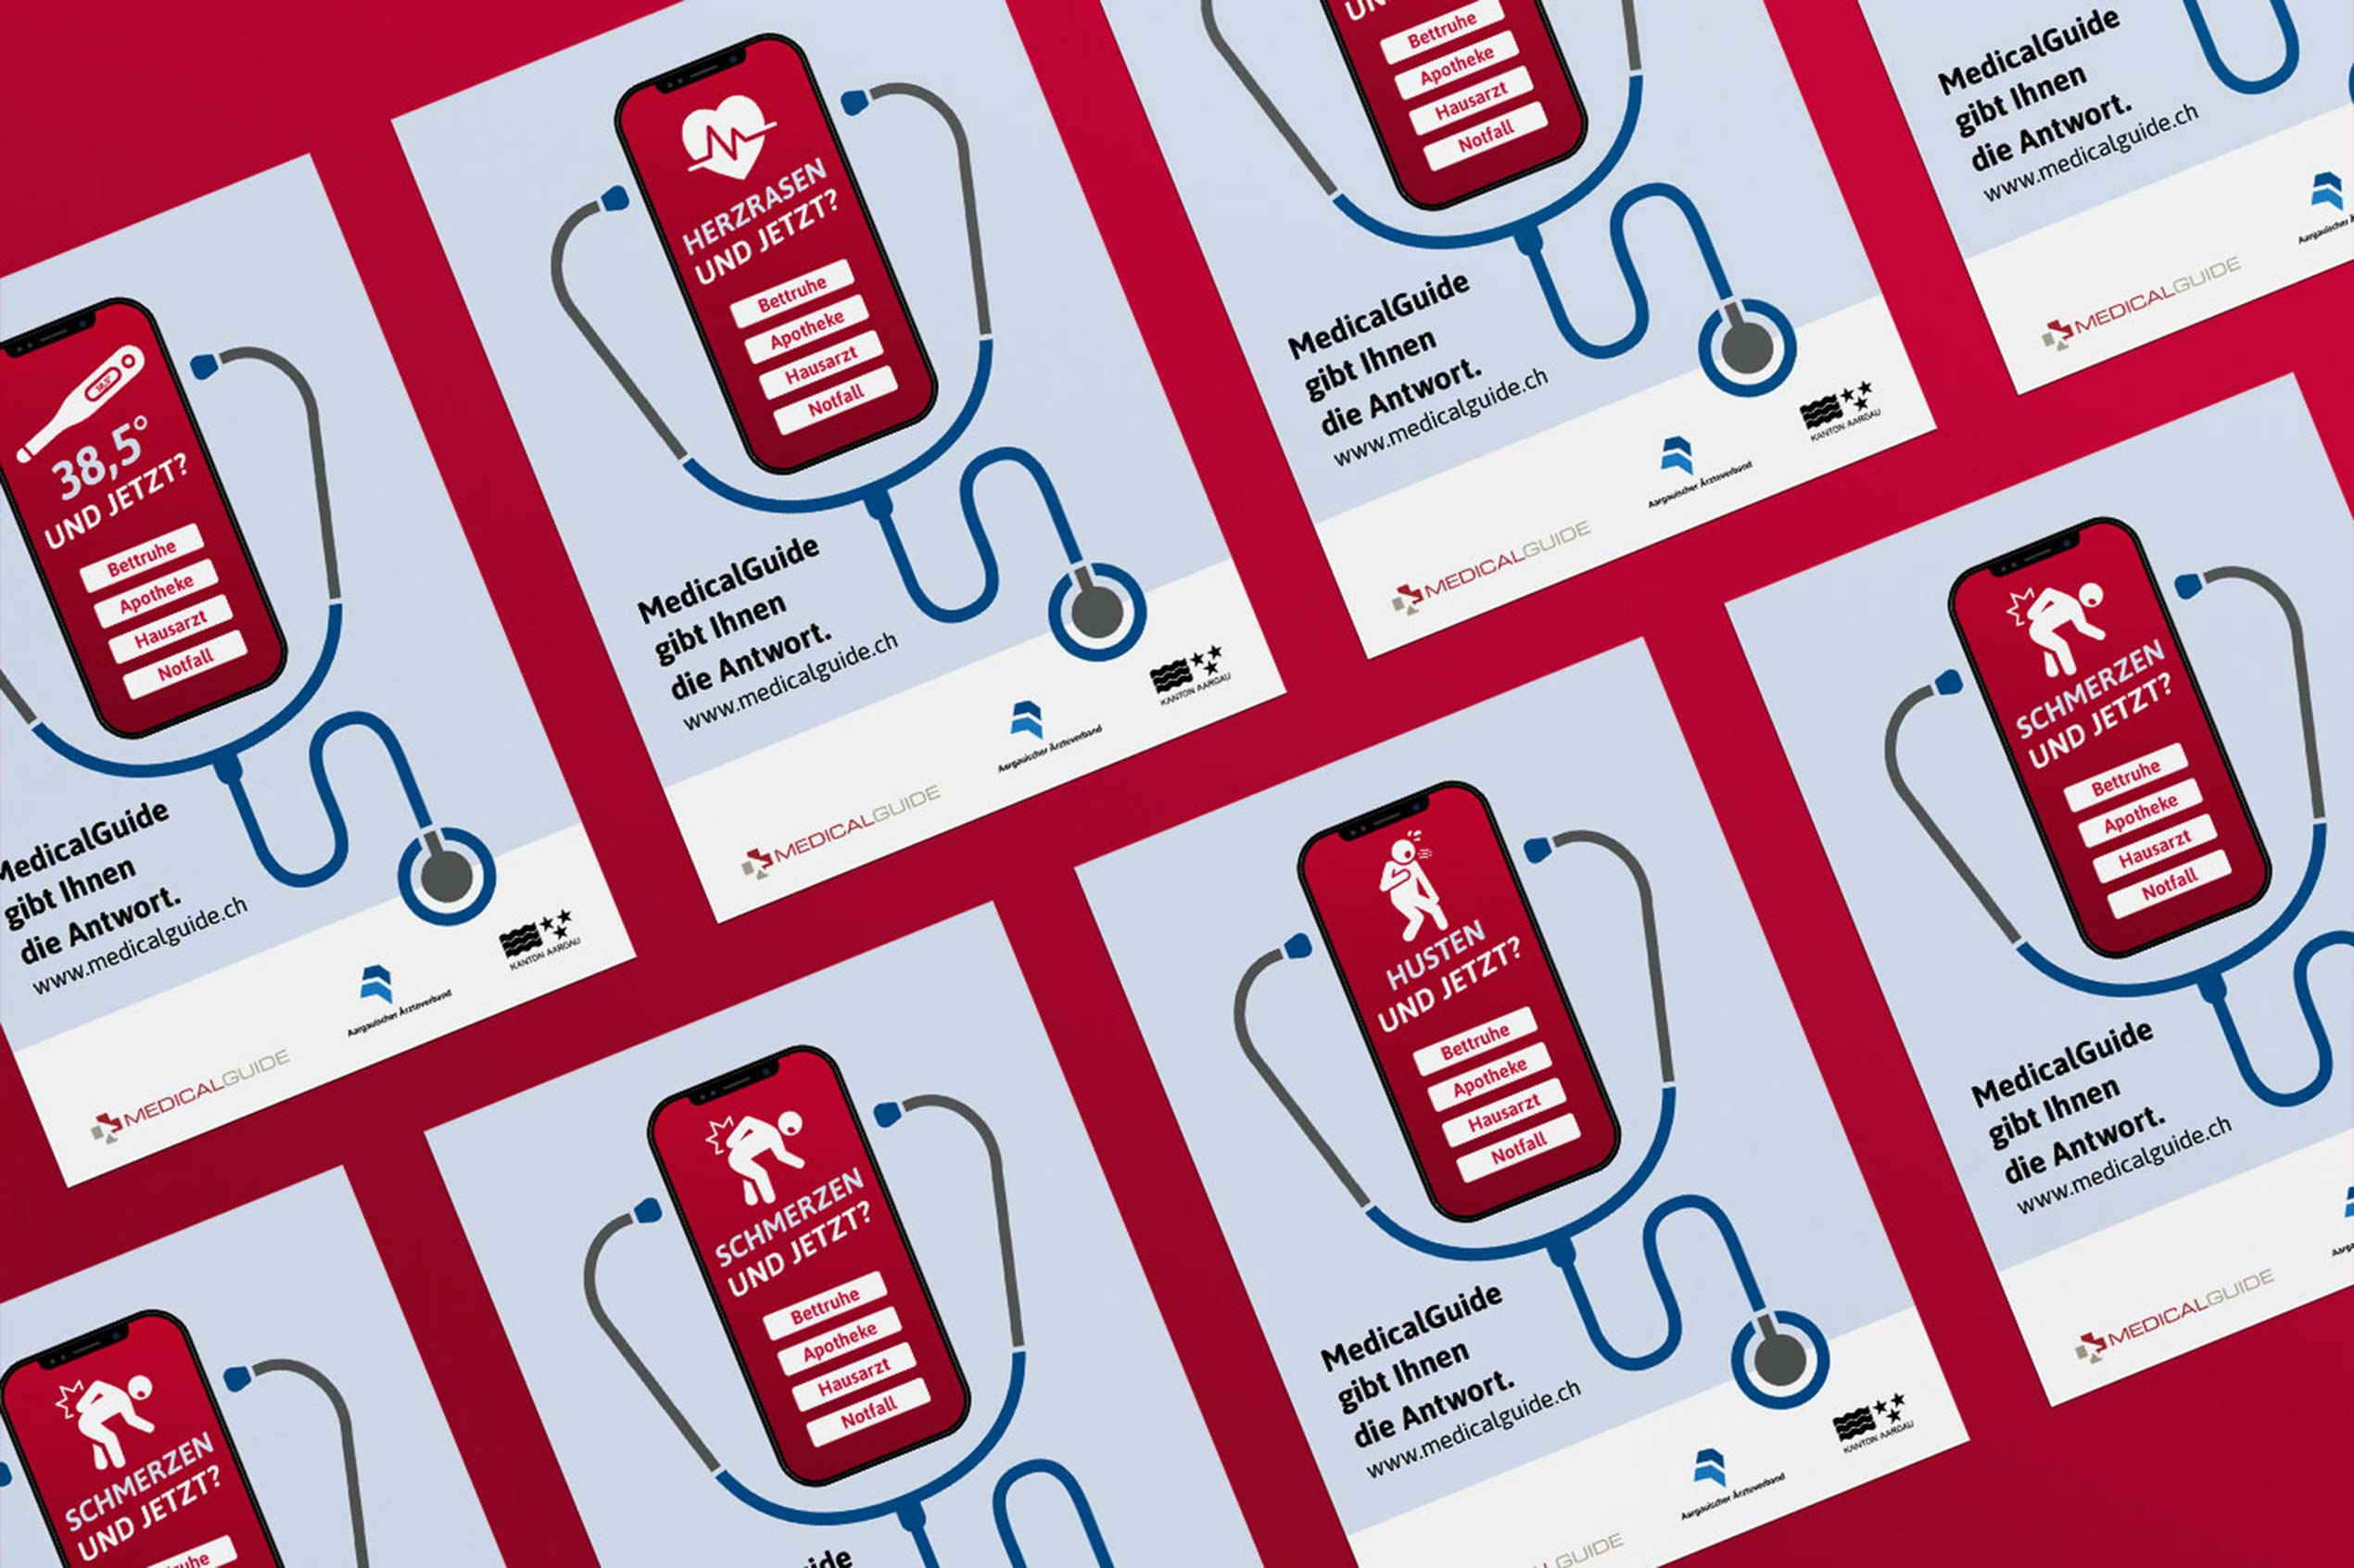 Plakate zum Launch der Medical-Guide-App mit der Illustration des User Interfaces auf dem Smartphone